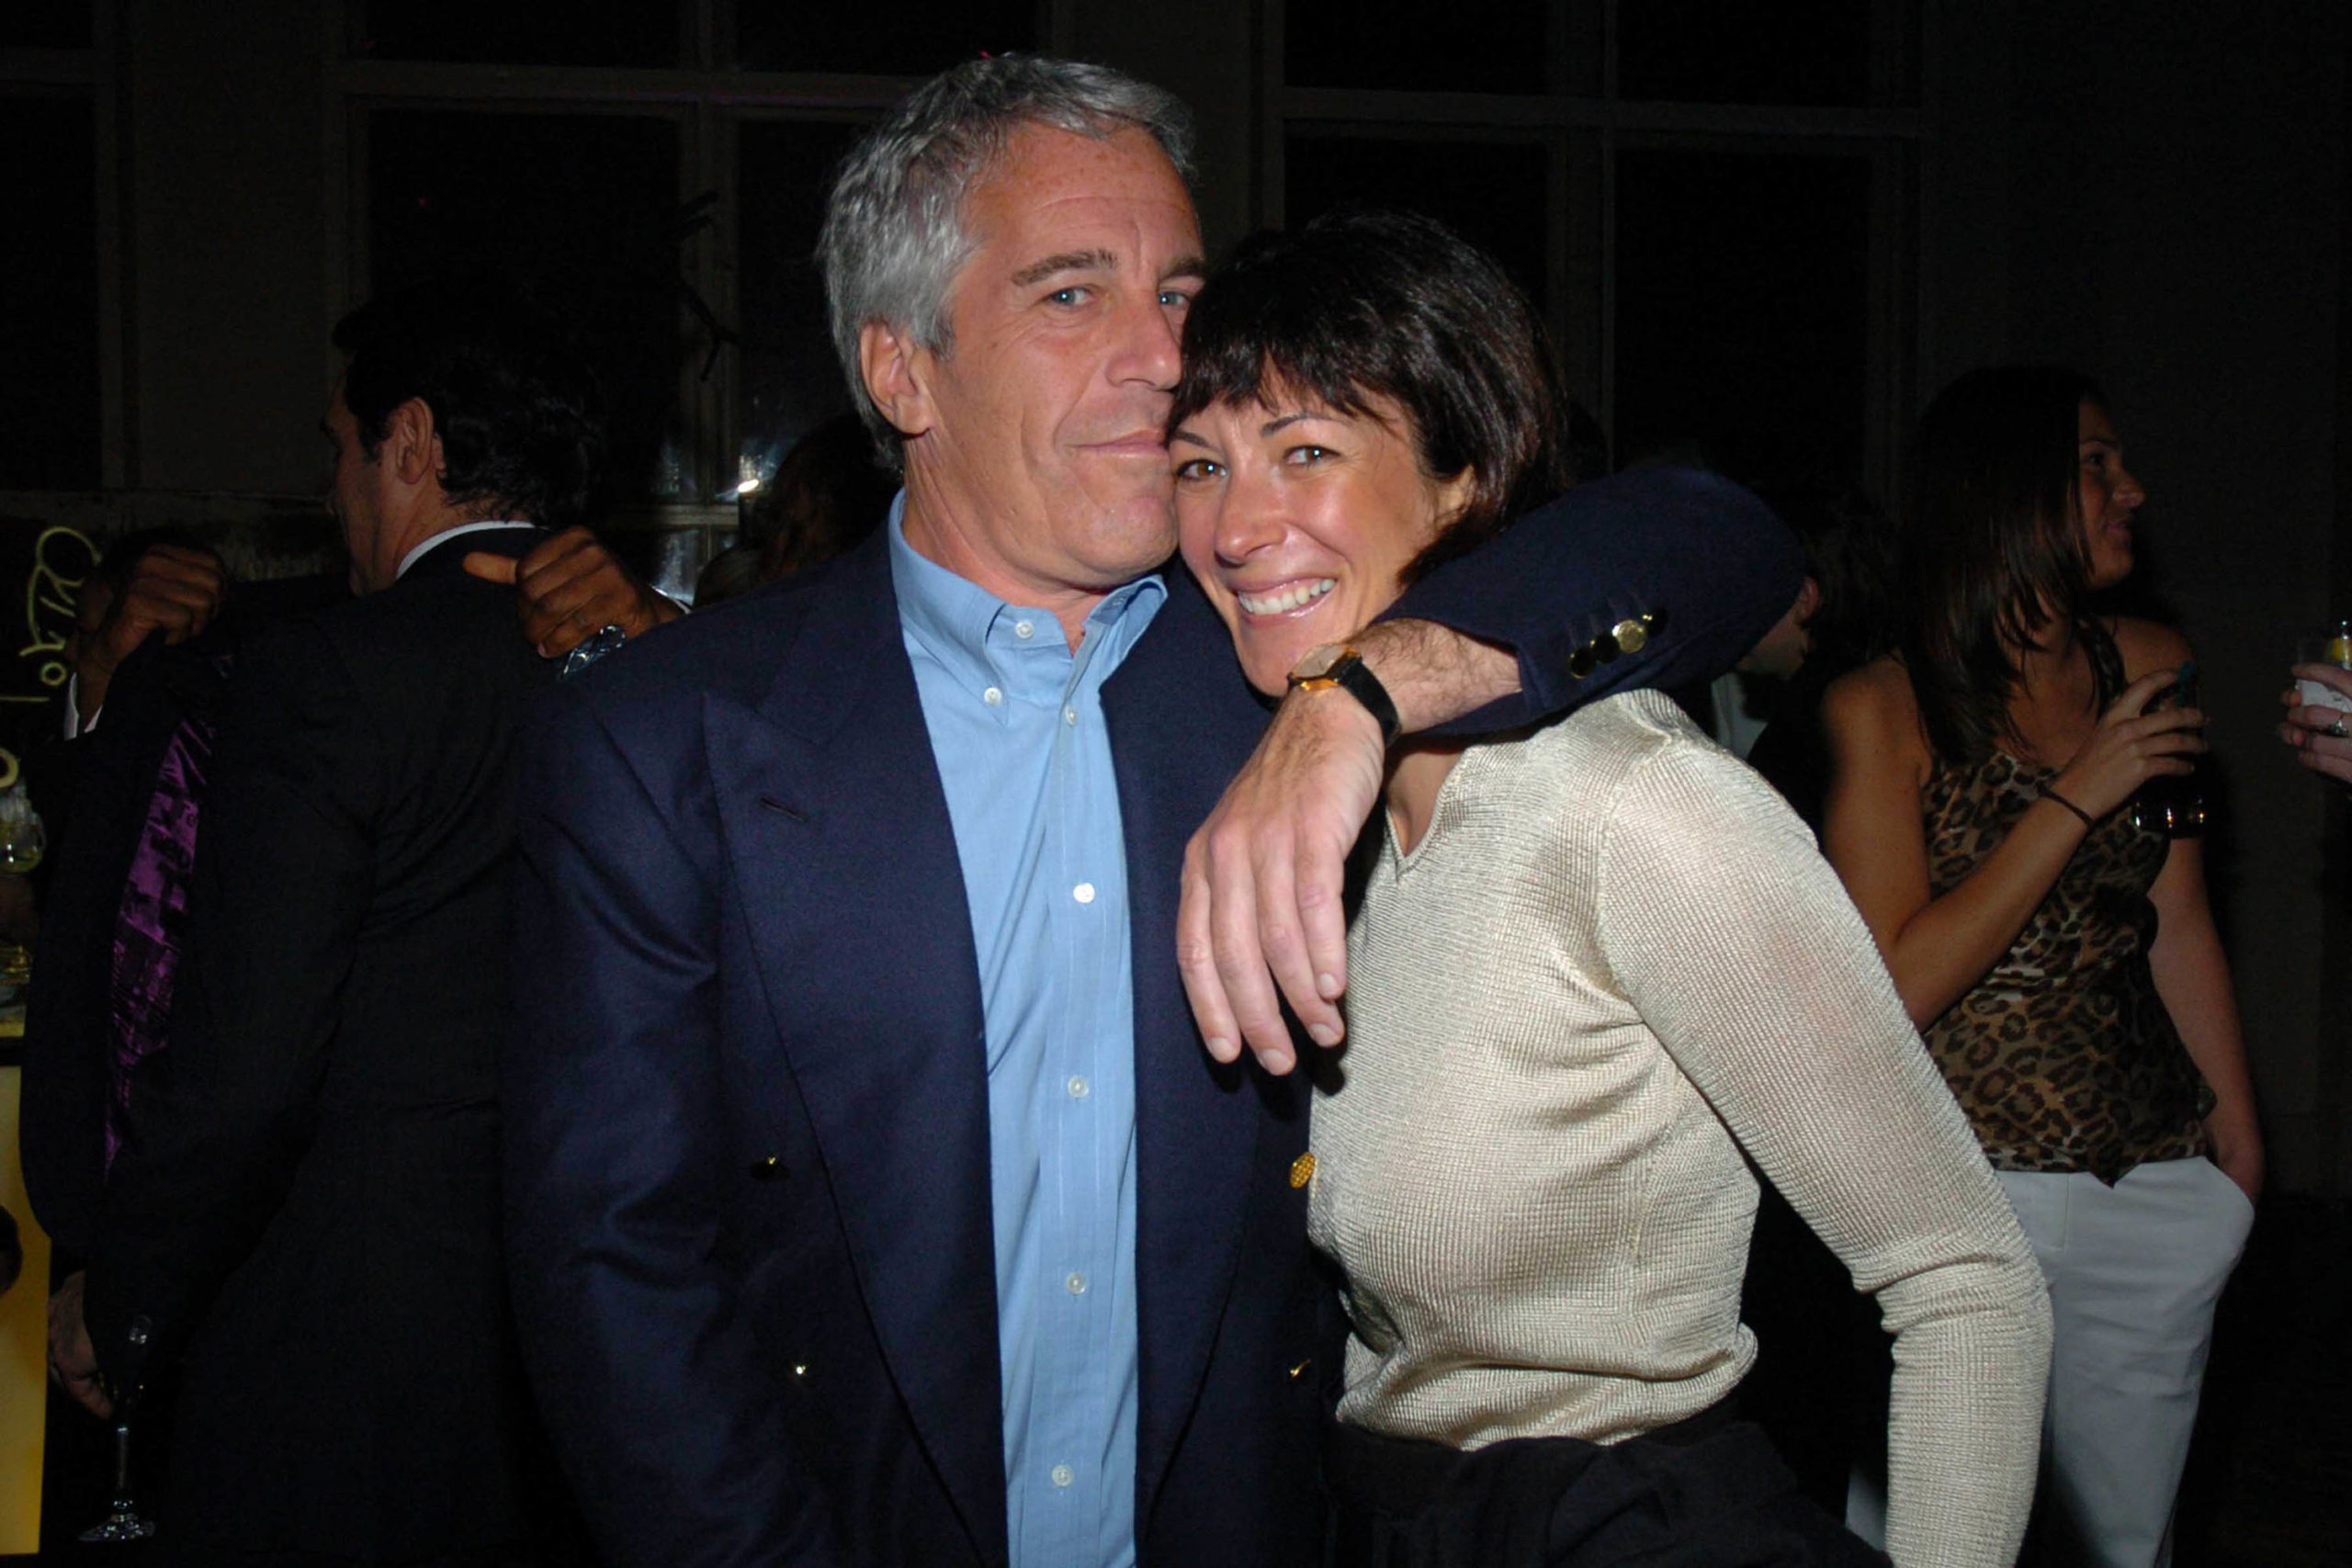 Epstein's Longtime Girlfriend Arrested and Charged With Enticement of Minors